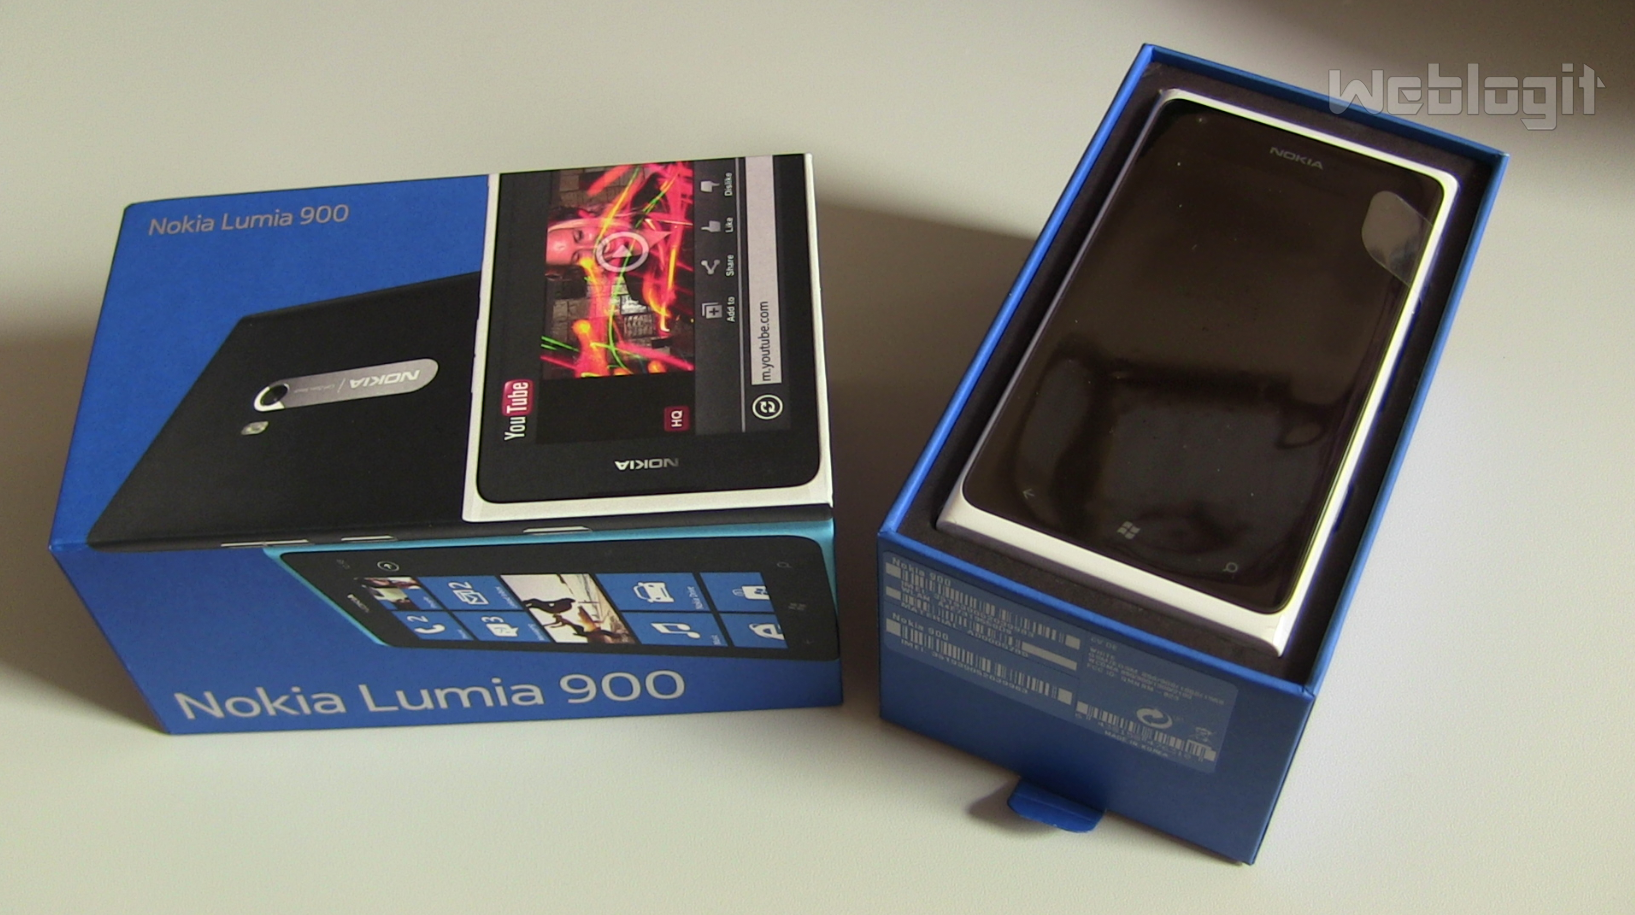 Nokia Lumia 900 wbi32 Nokia Lumia 900 –Das neue Windows Smartphone